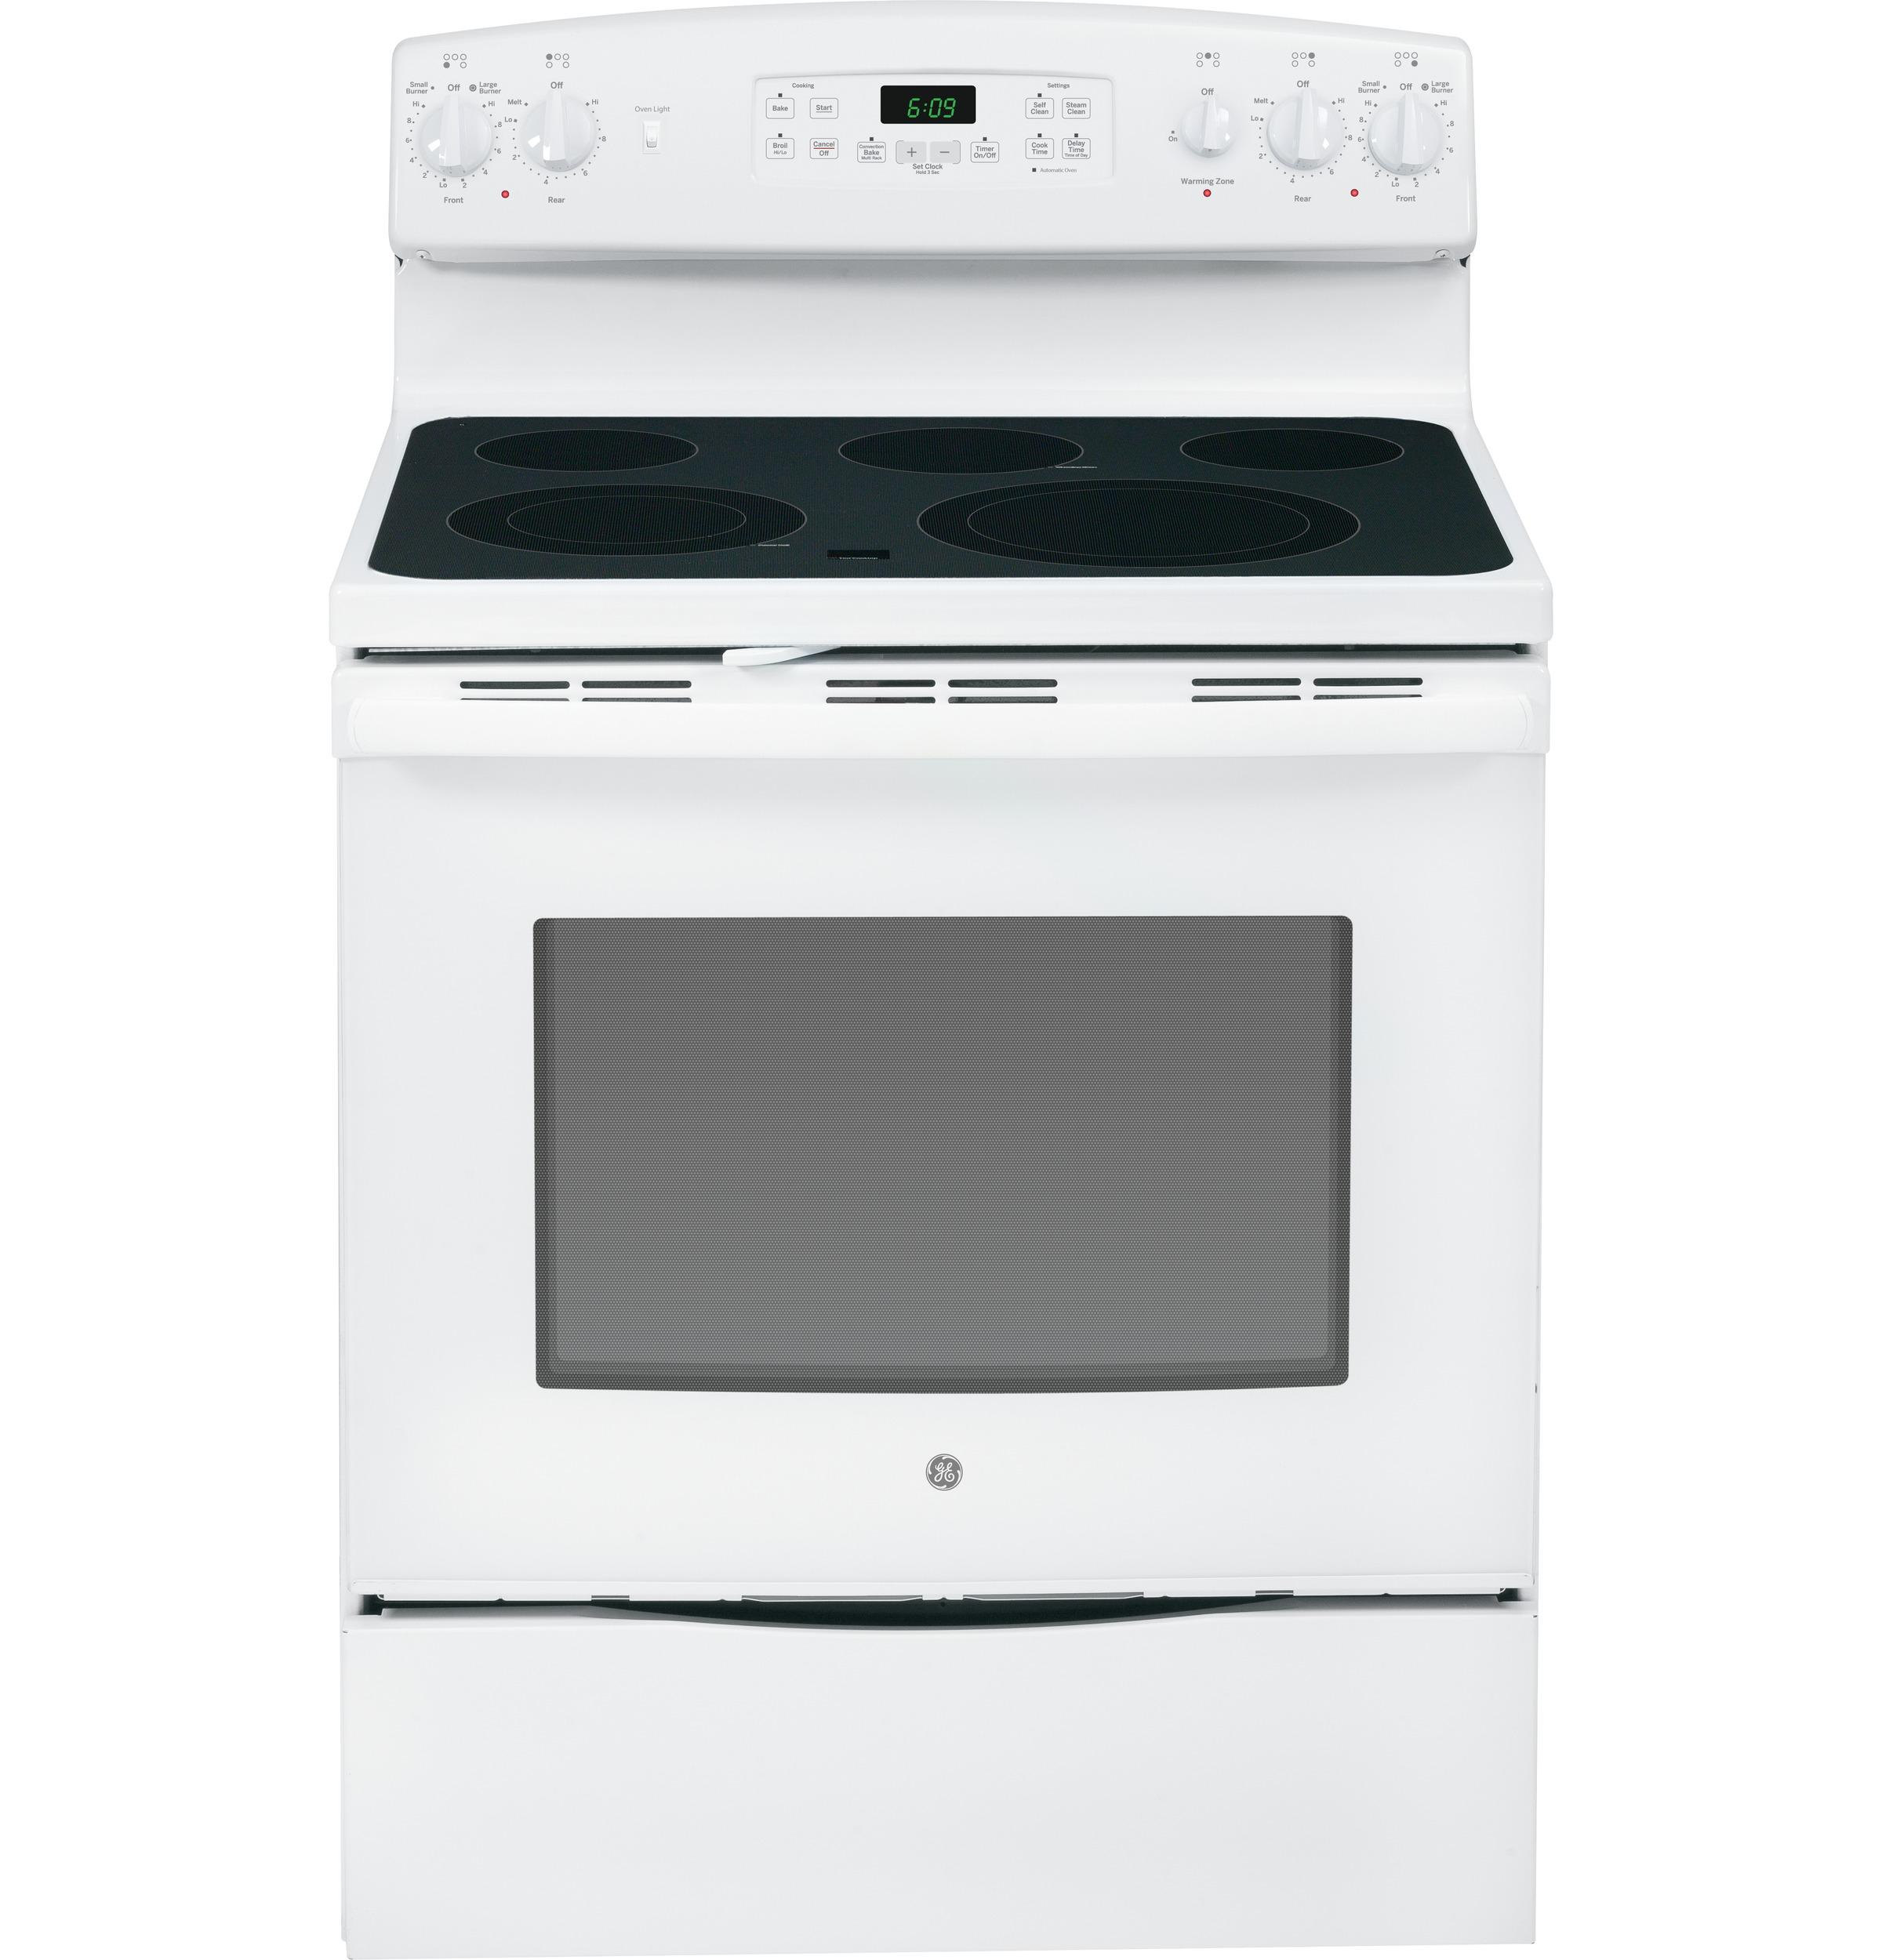 Countertop Oven Wattage : Electric Ovens: Electric Oven Wattage